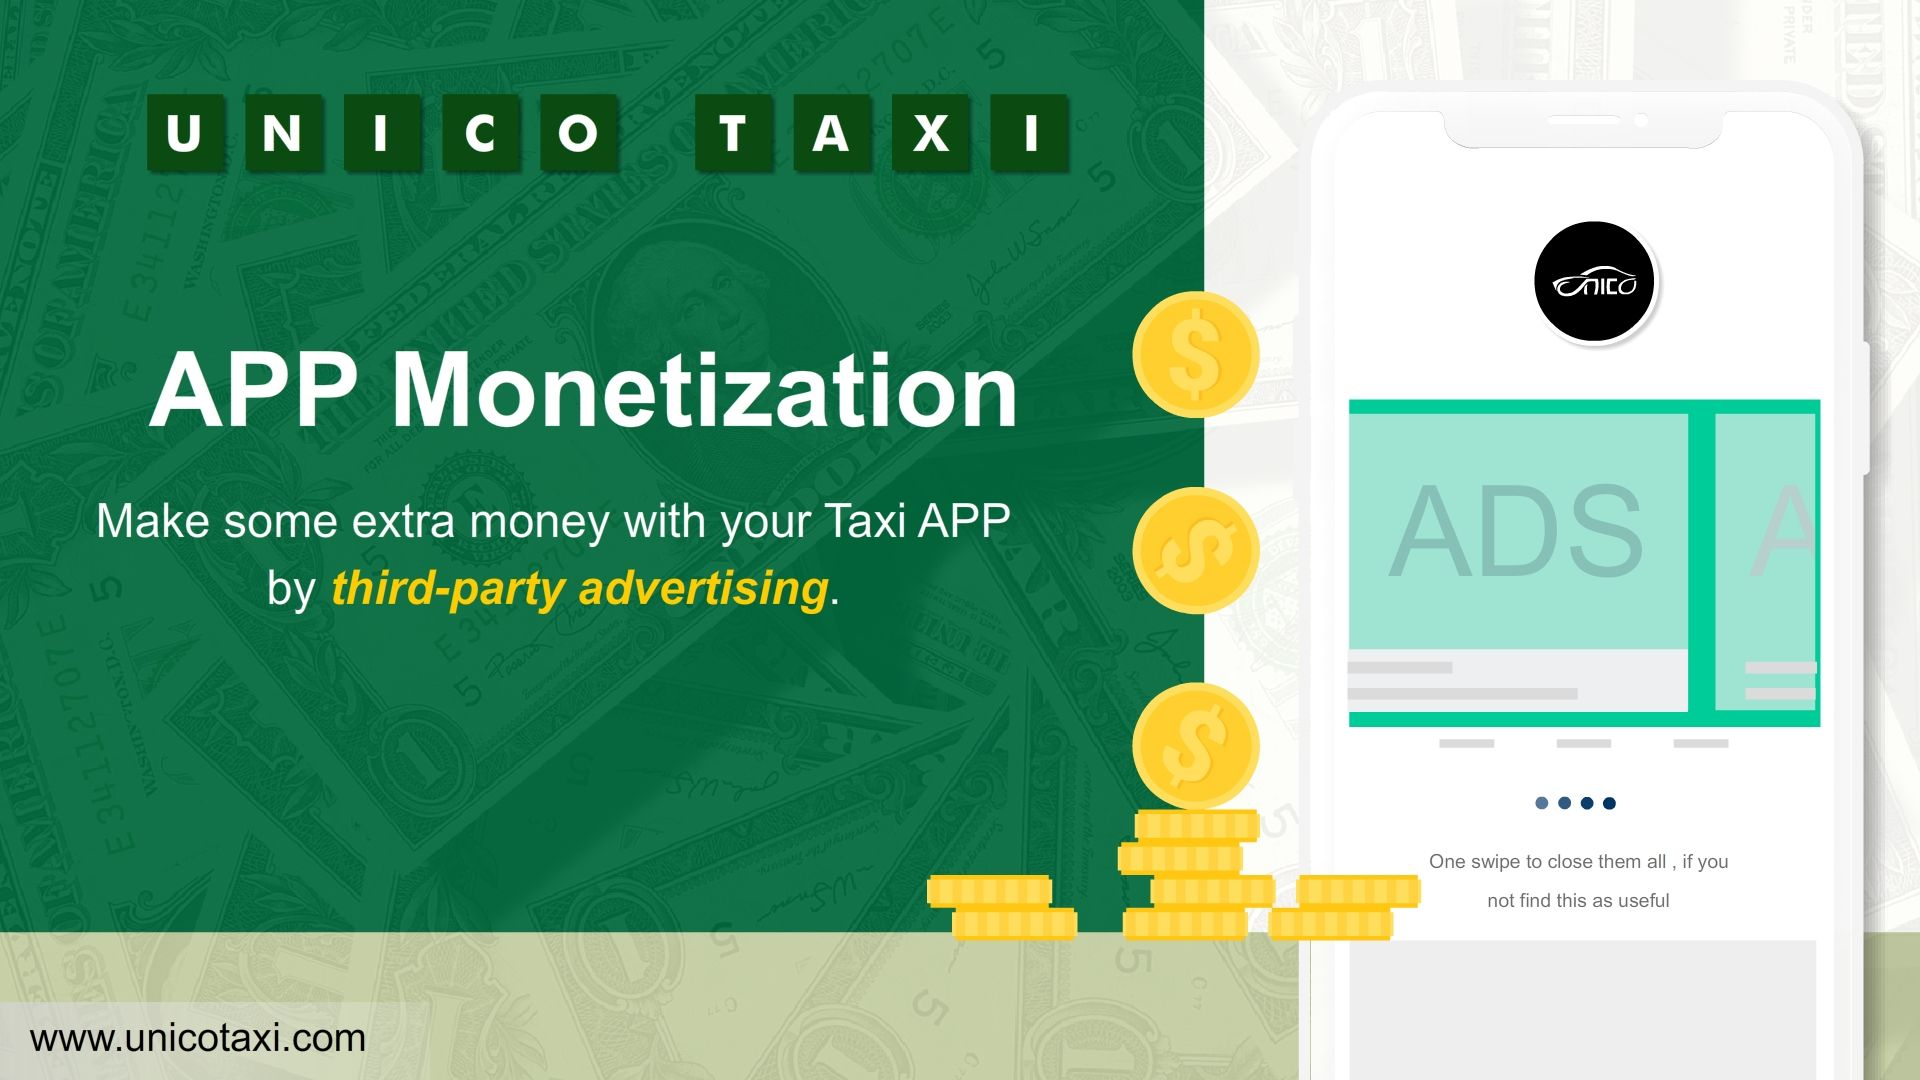 Make some extra money with your Taxi APP by third-party advertising